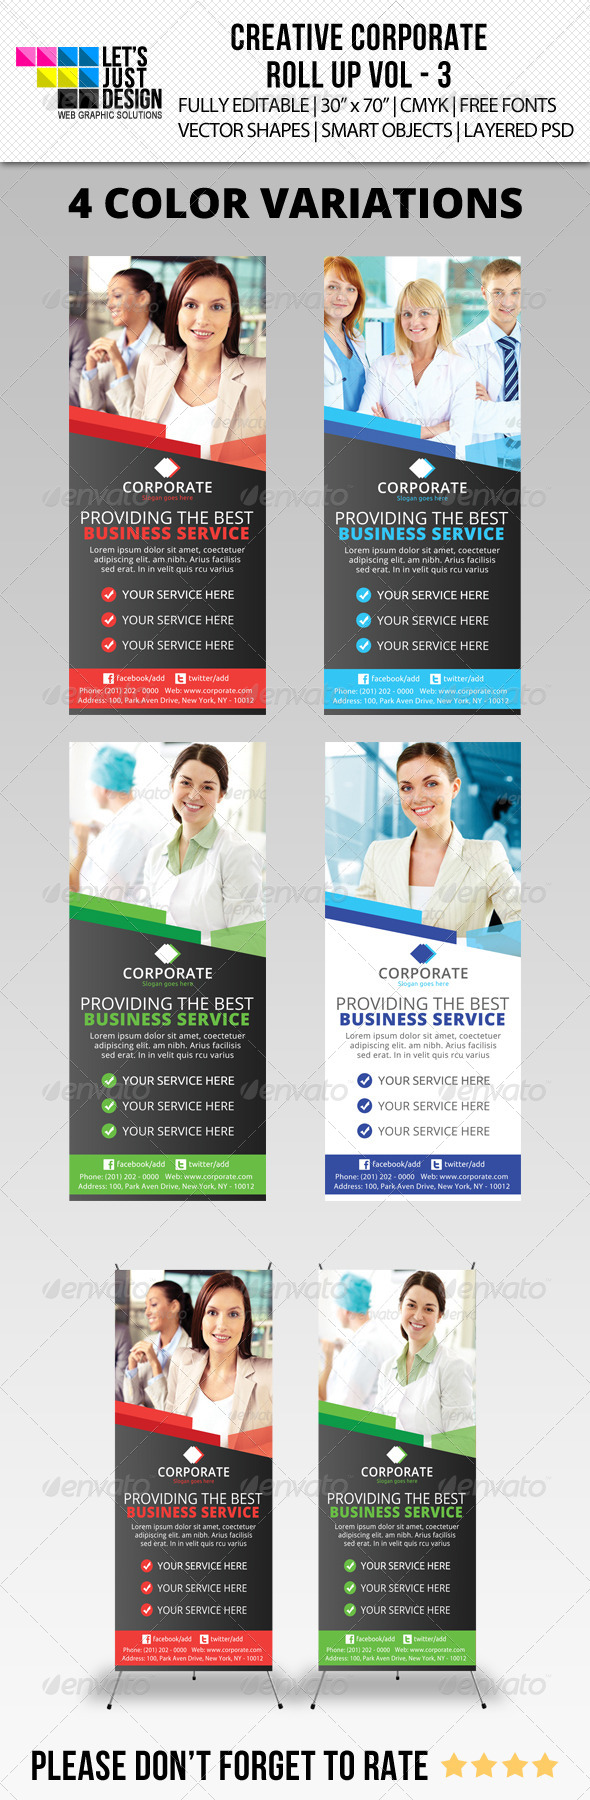 Corporate Roll-Up Banner Vol 3